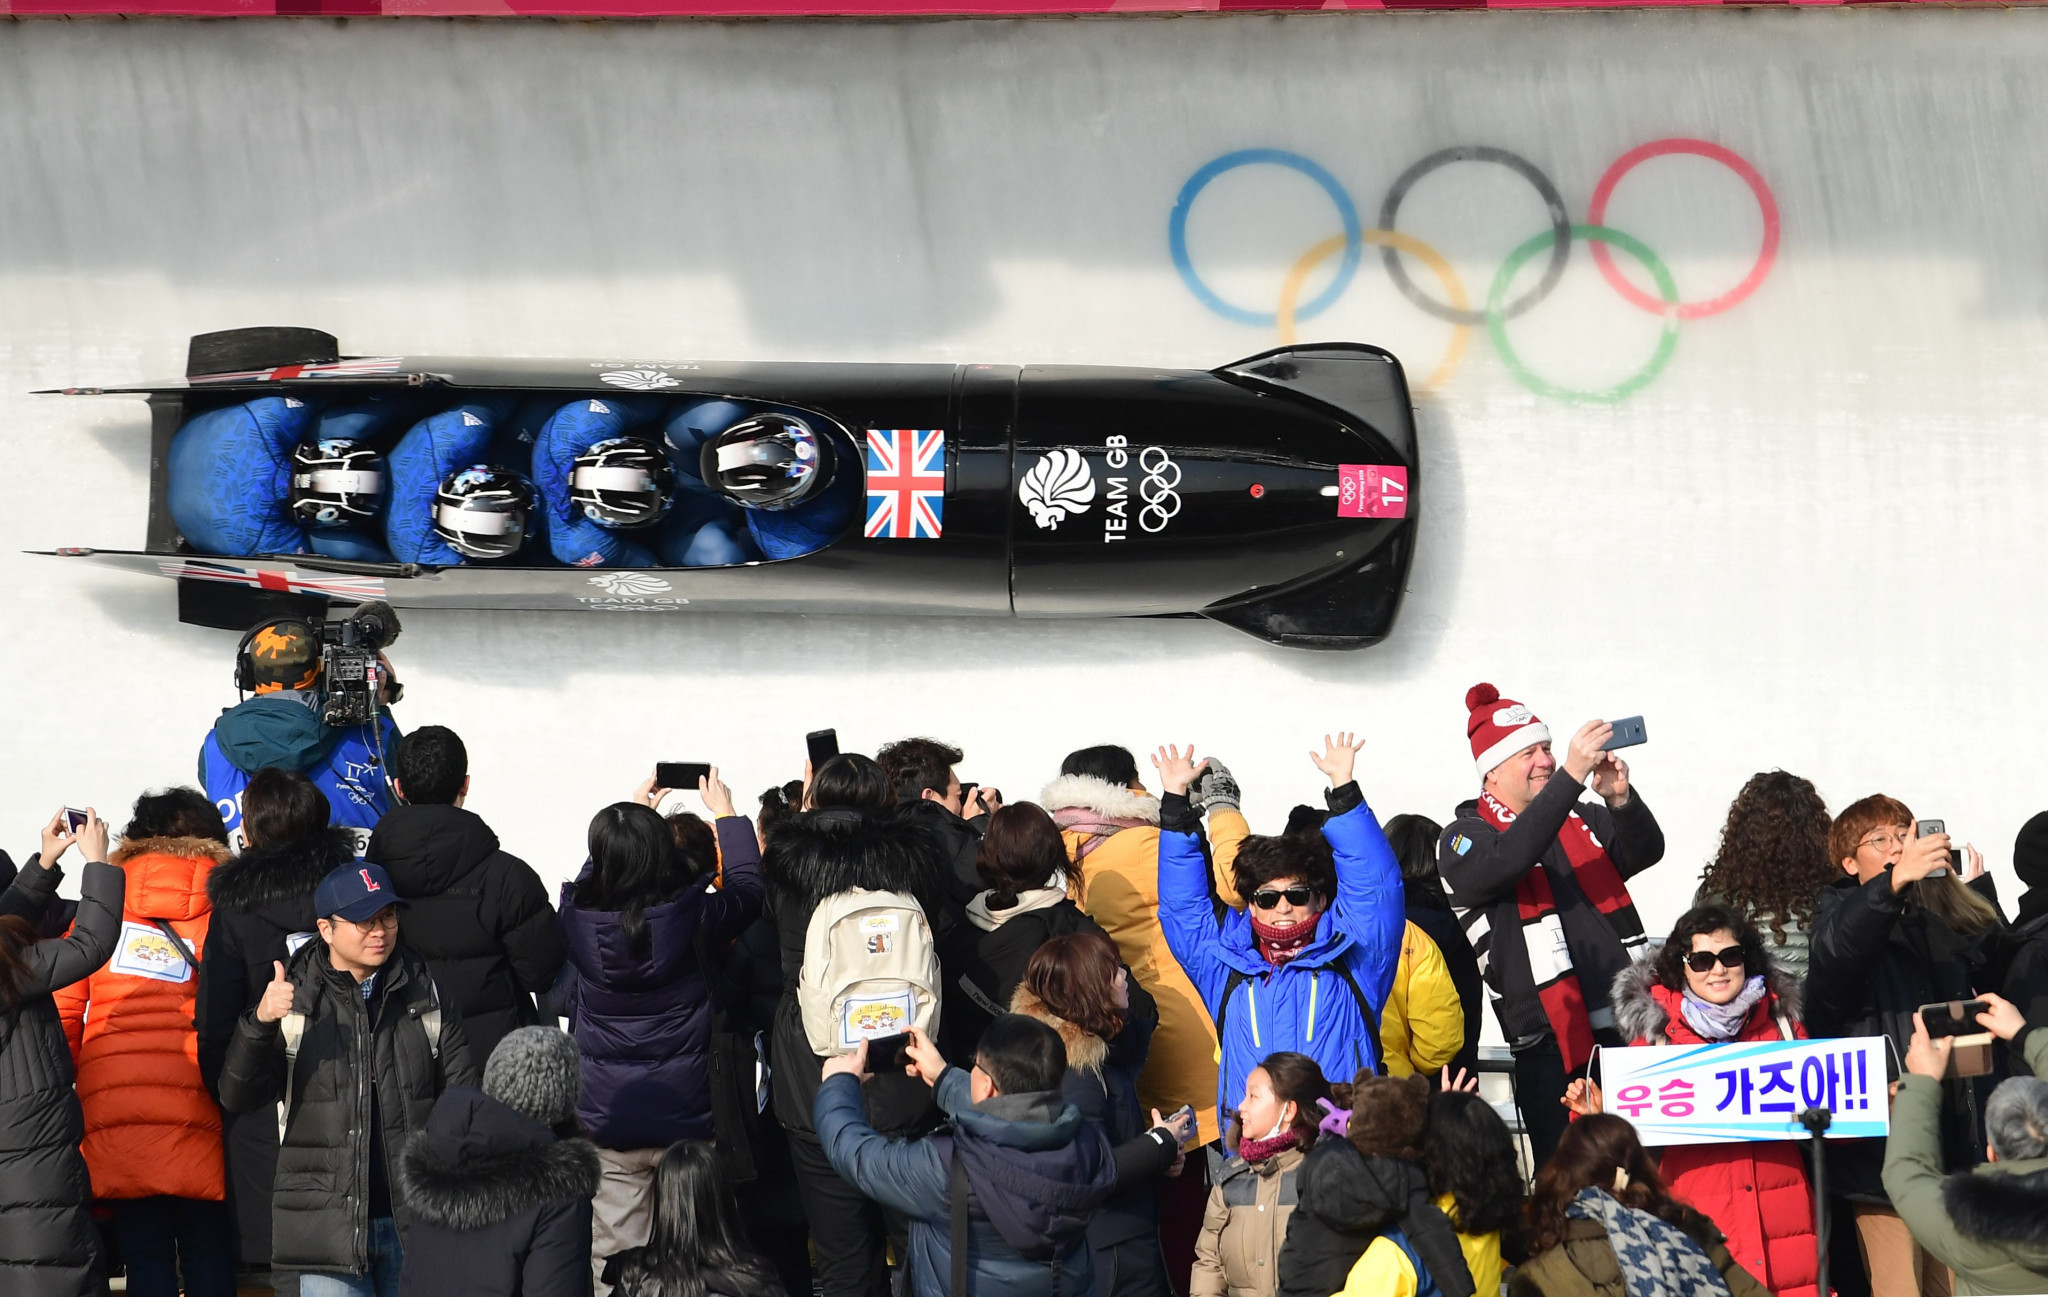 Britain's four-man bob teams failed to reach their target of top five finishes at Pyeongchang 2018